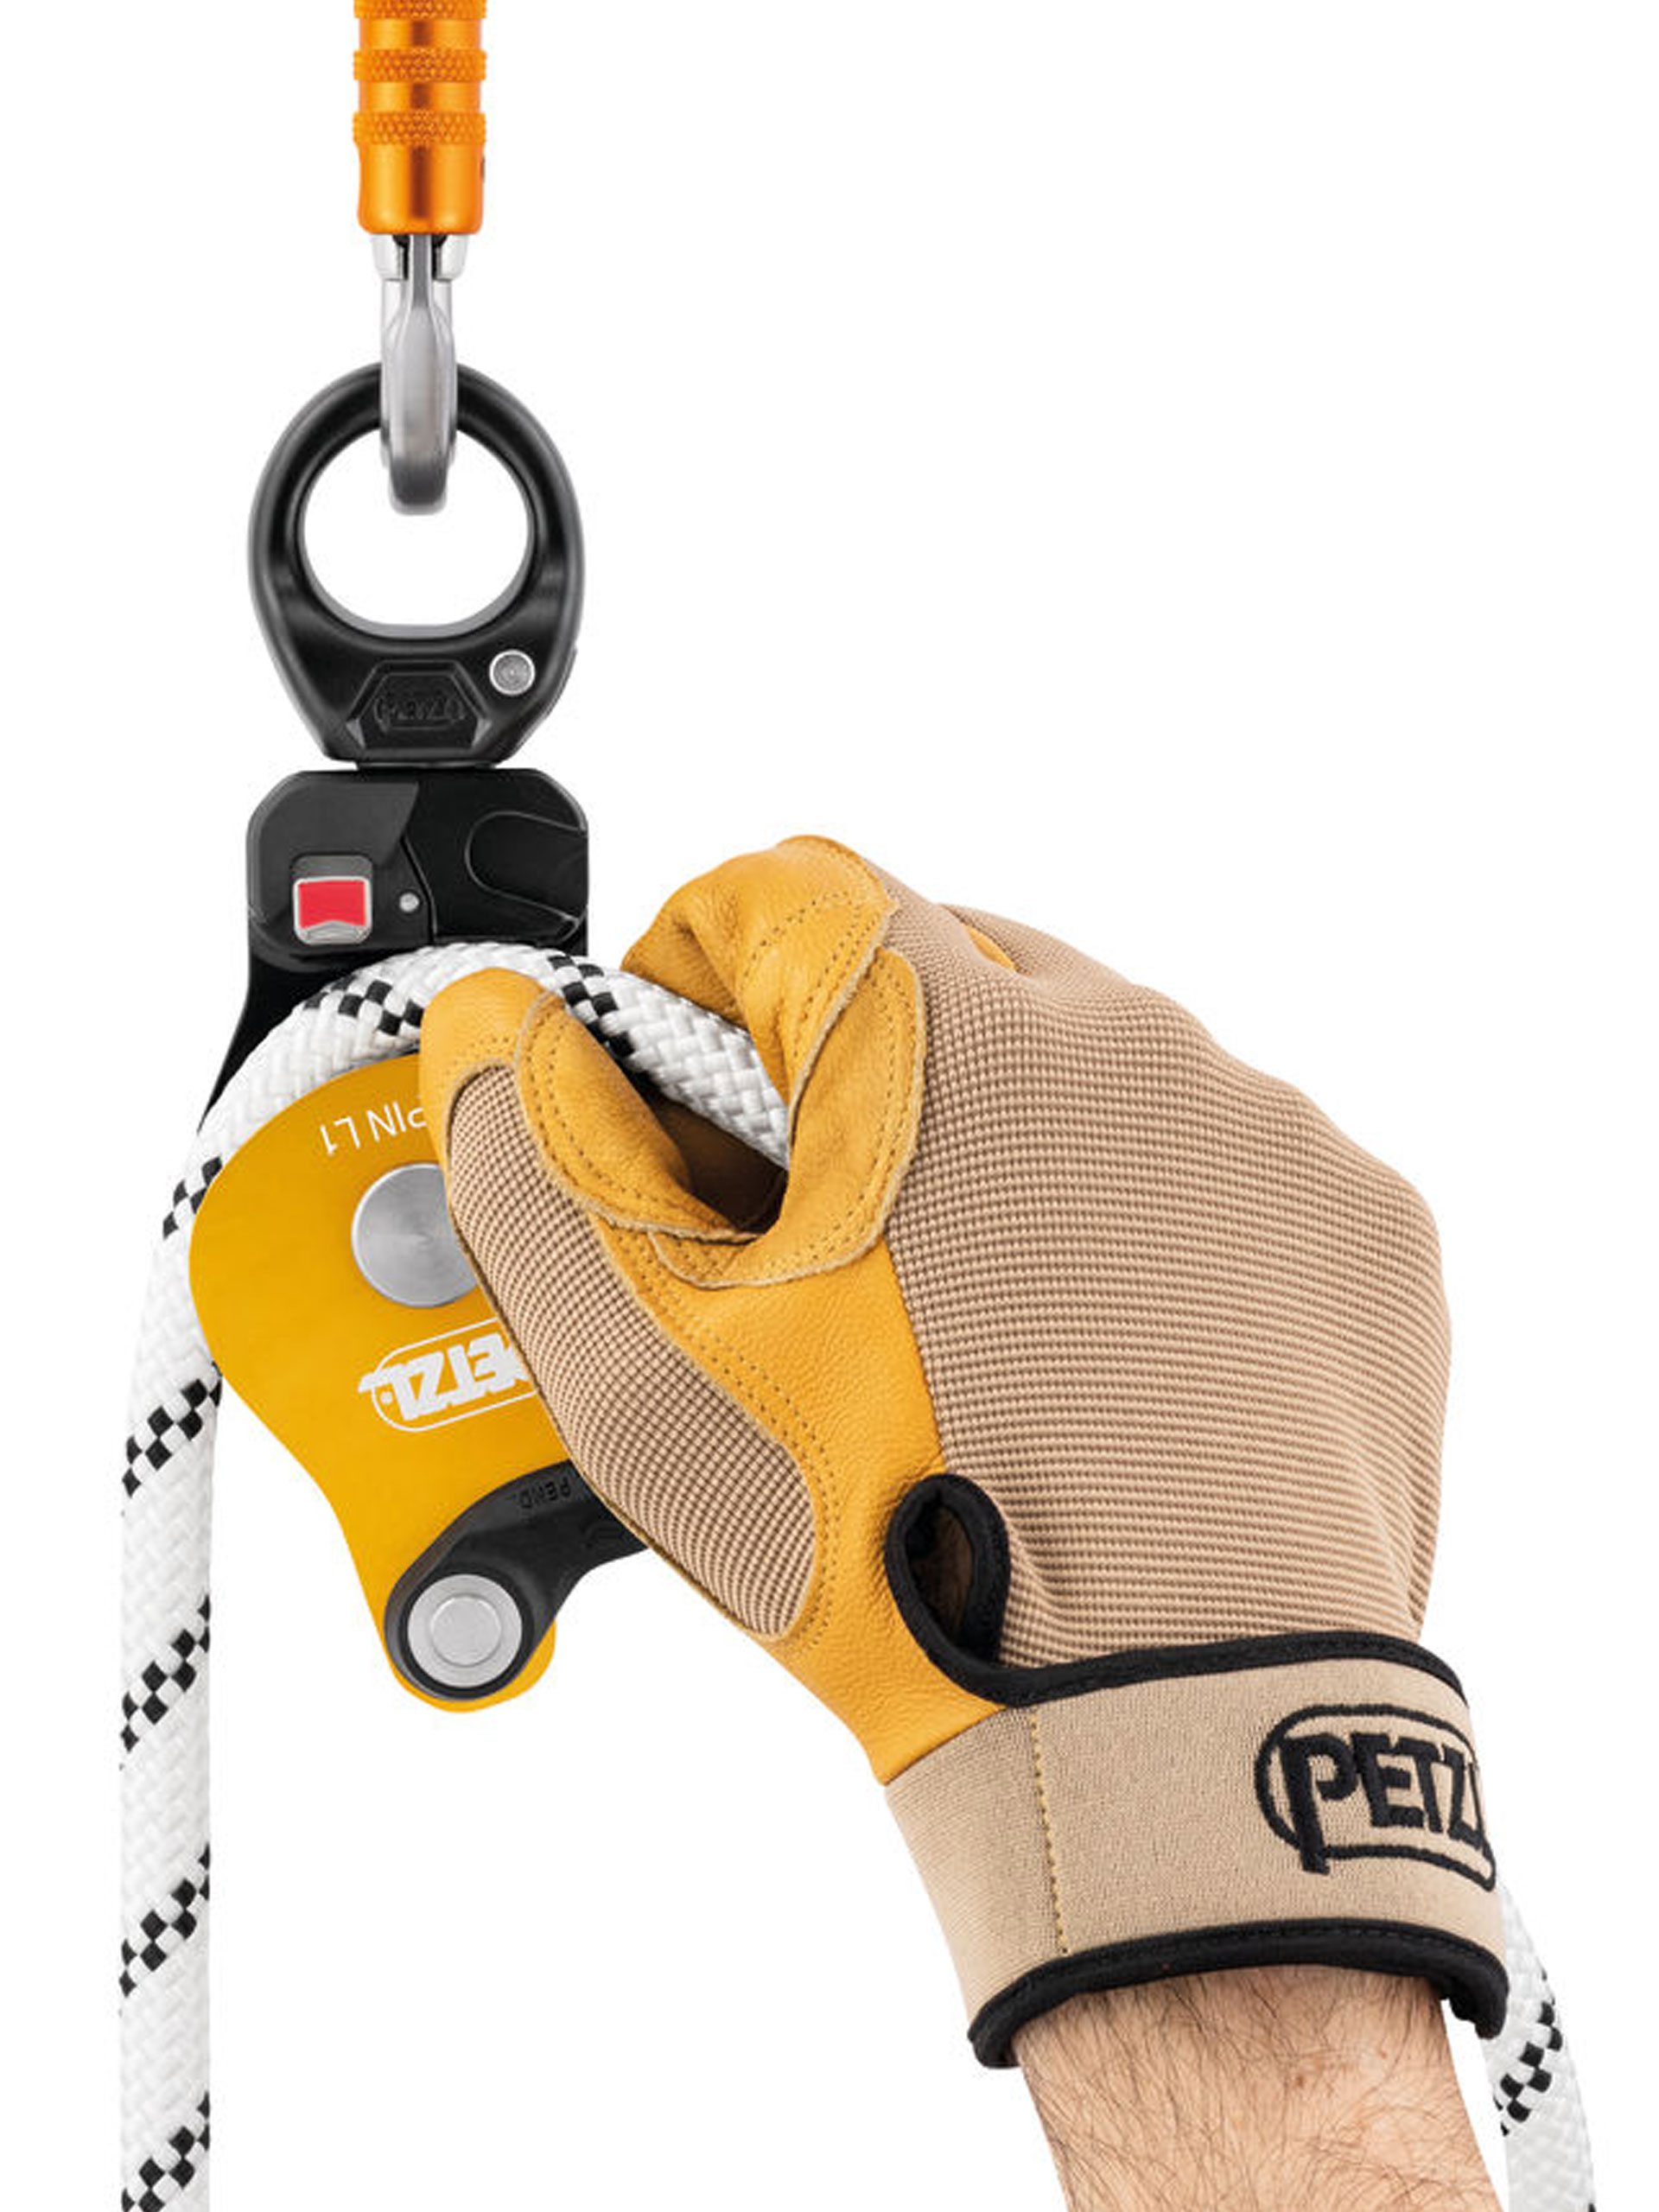 Petzl L1 pulley open